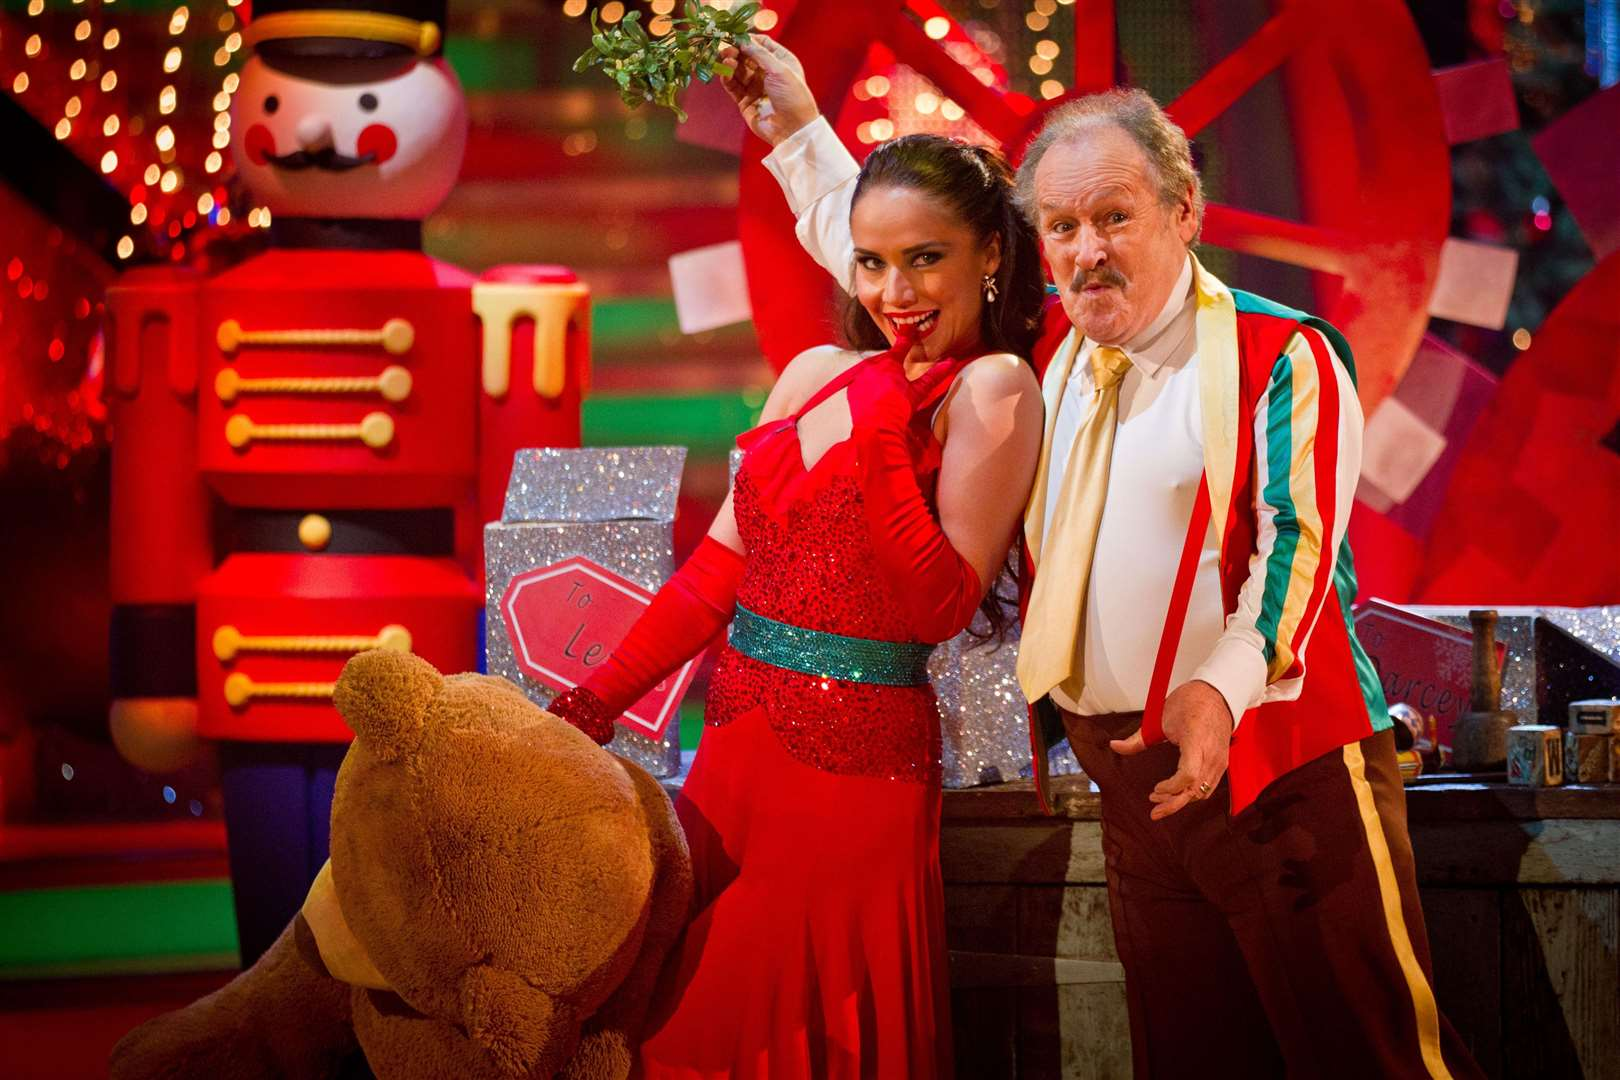 He appeared on the Strictly Come Dancing Christmas special in 2012 (PA)